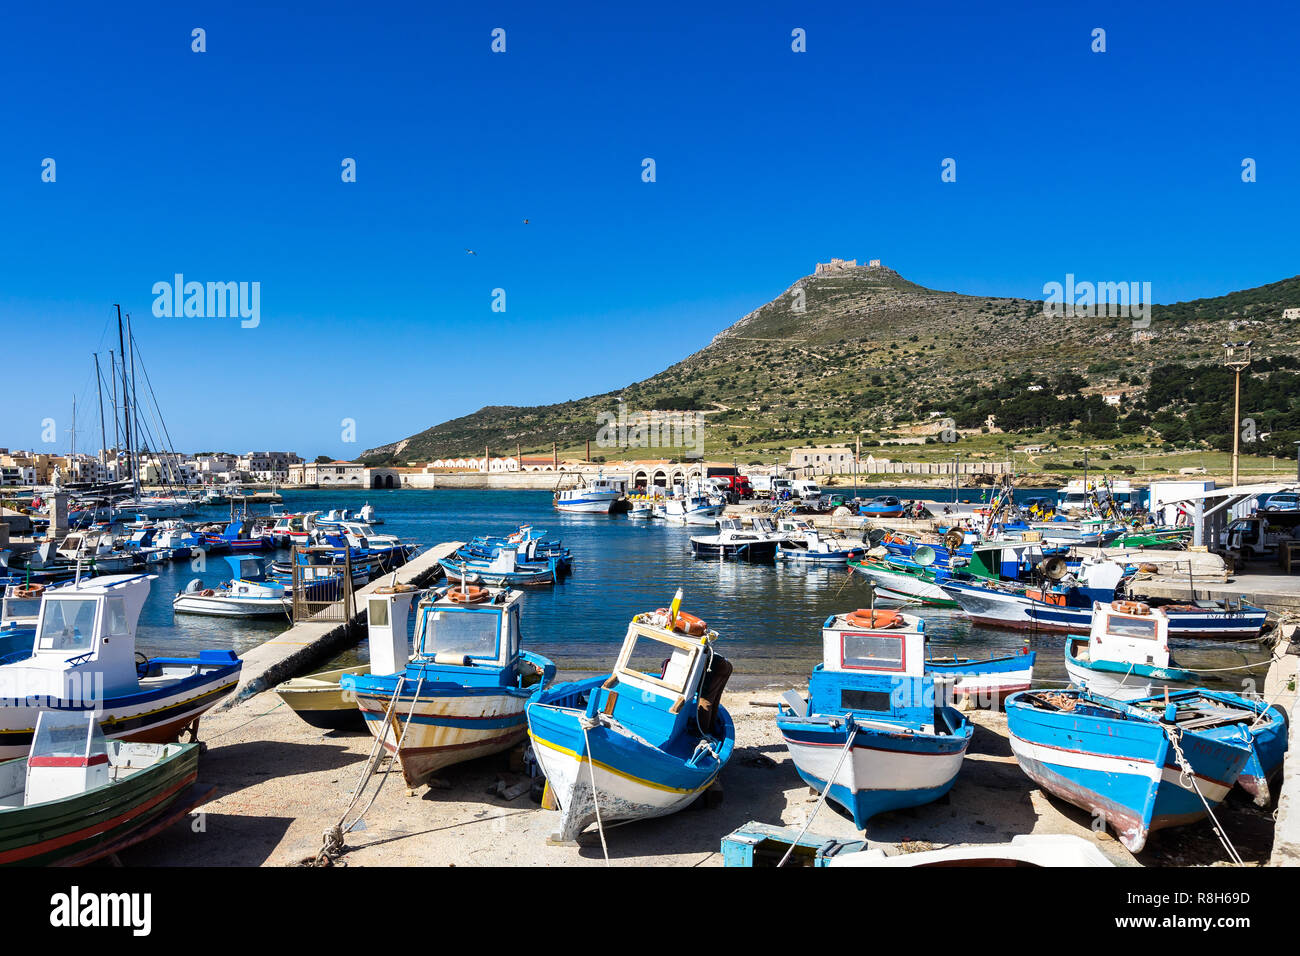 View of Favignana harbor full of traditional fishing boats with Forte Santa Caterina in the background, Aegadian Islands, Sicily, Italy Stock Photo